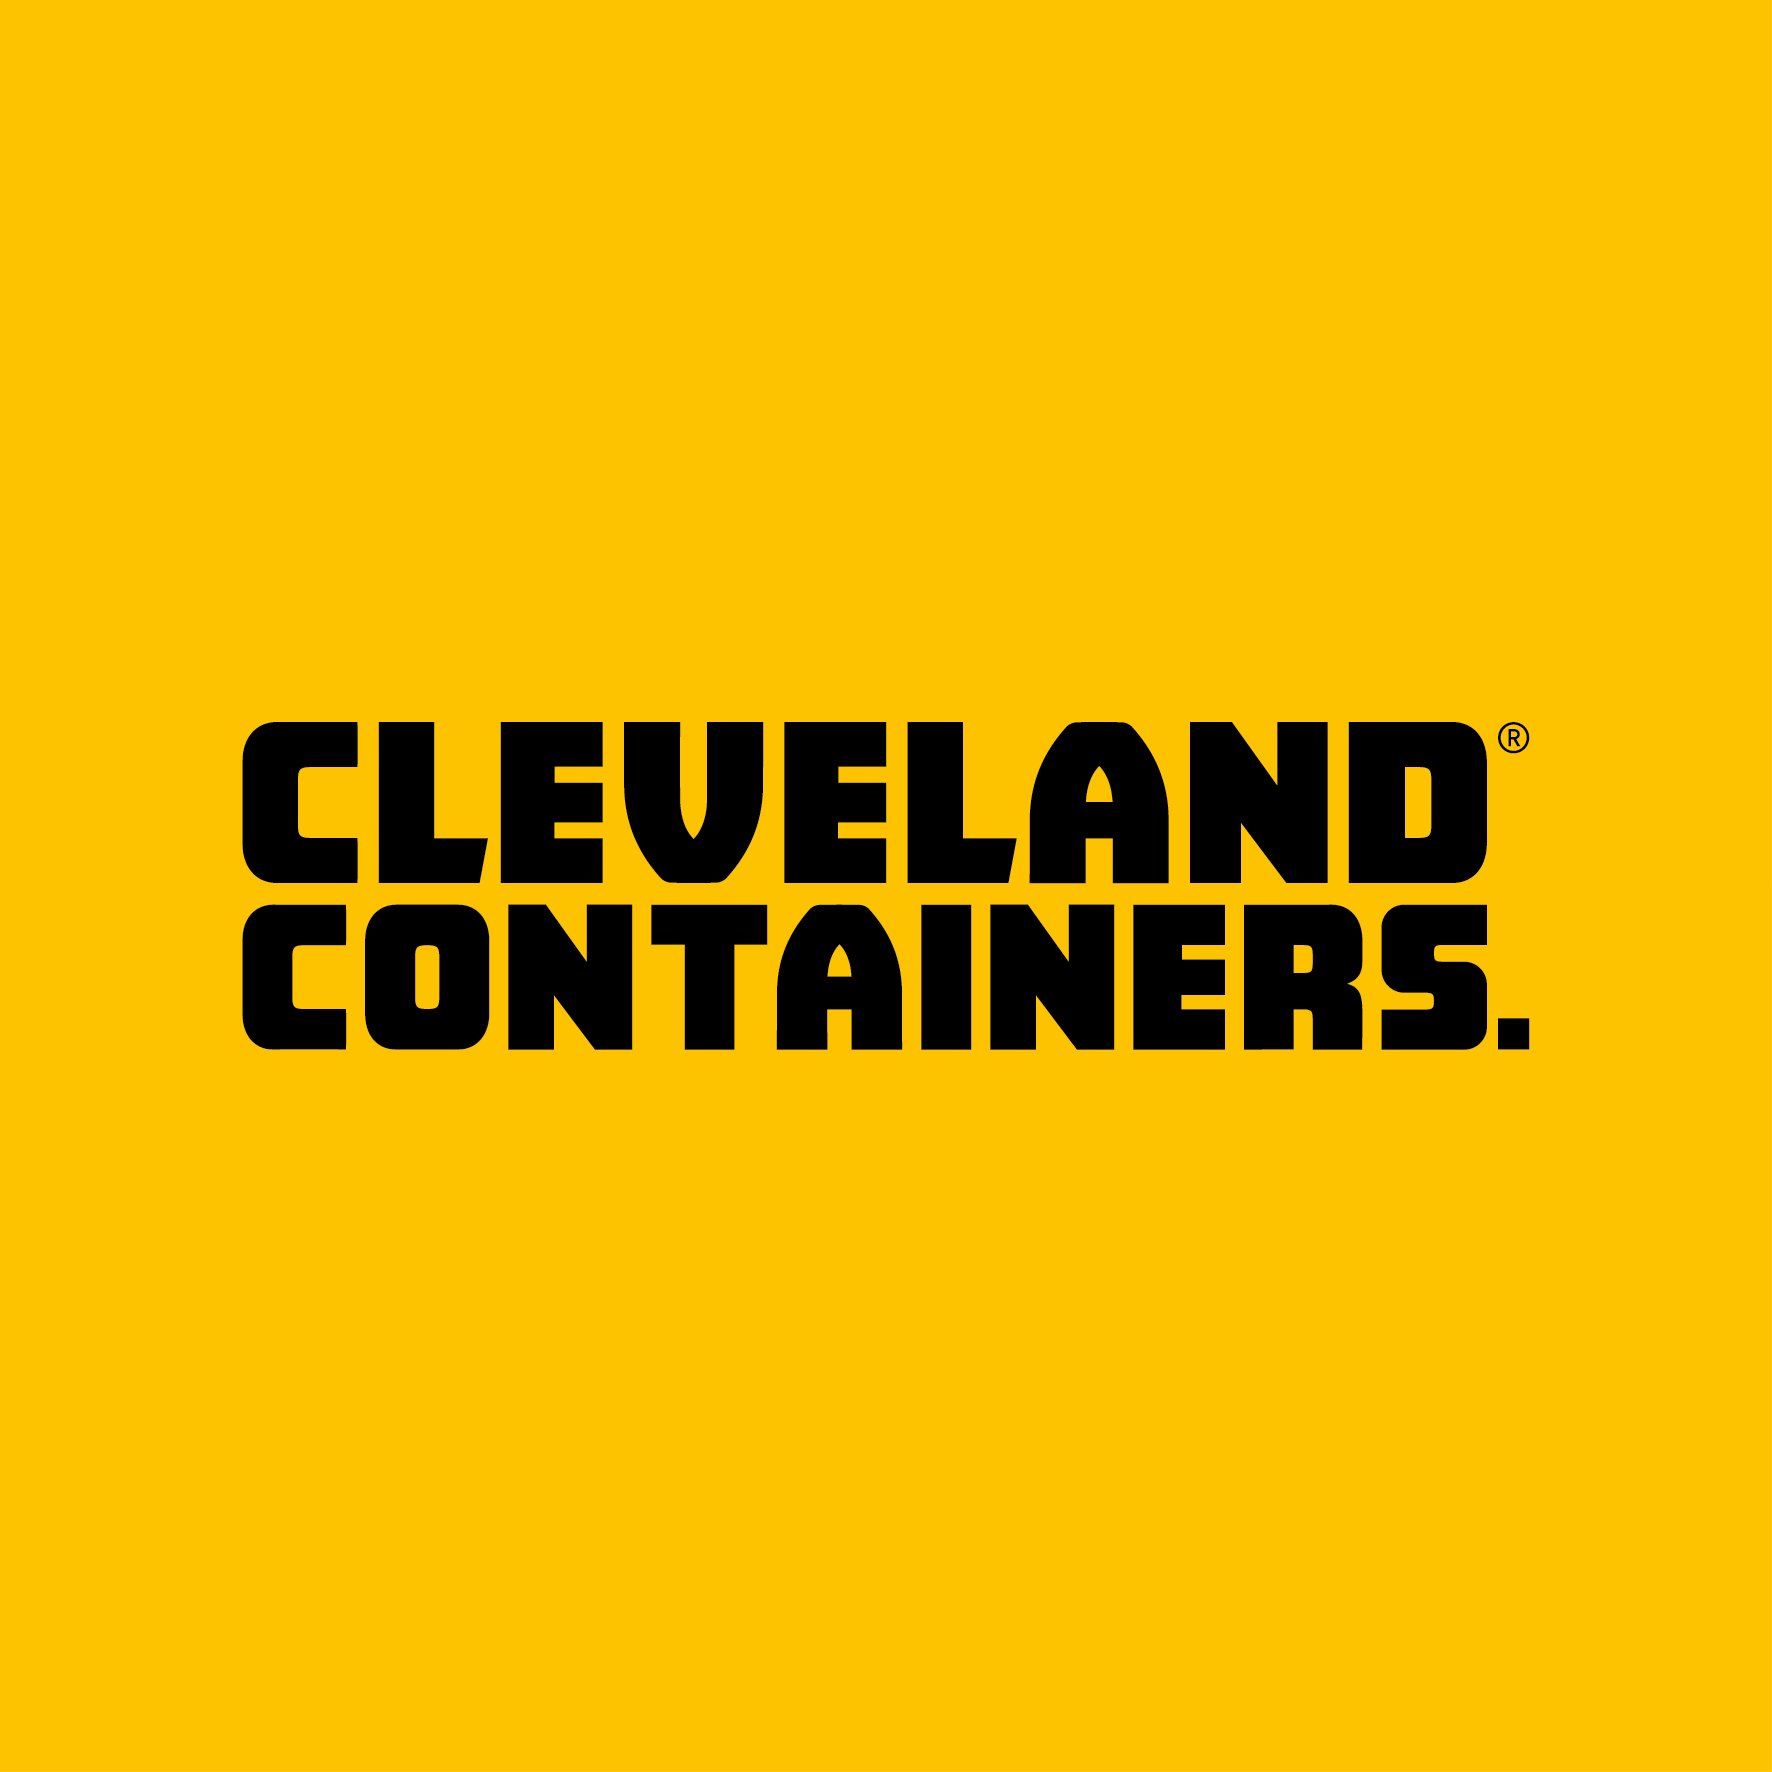 Cleveland Containers Ltd